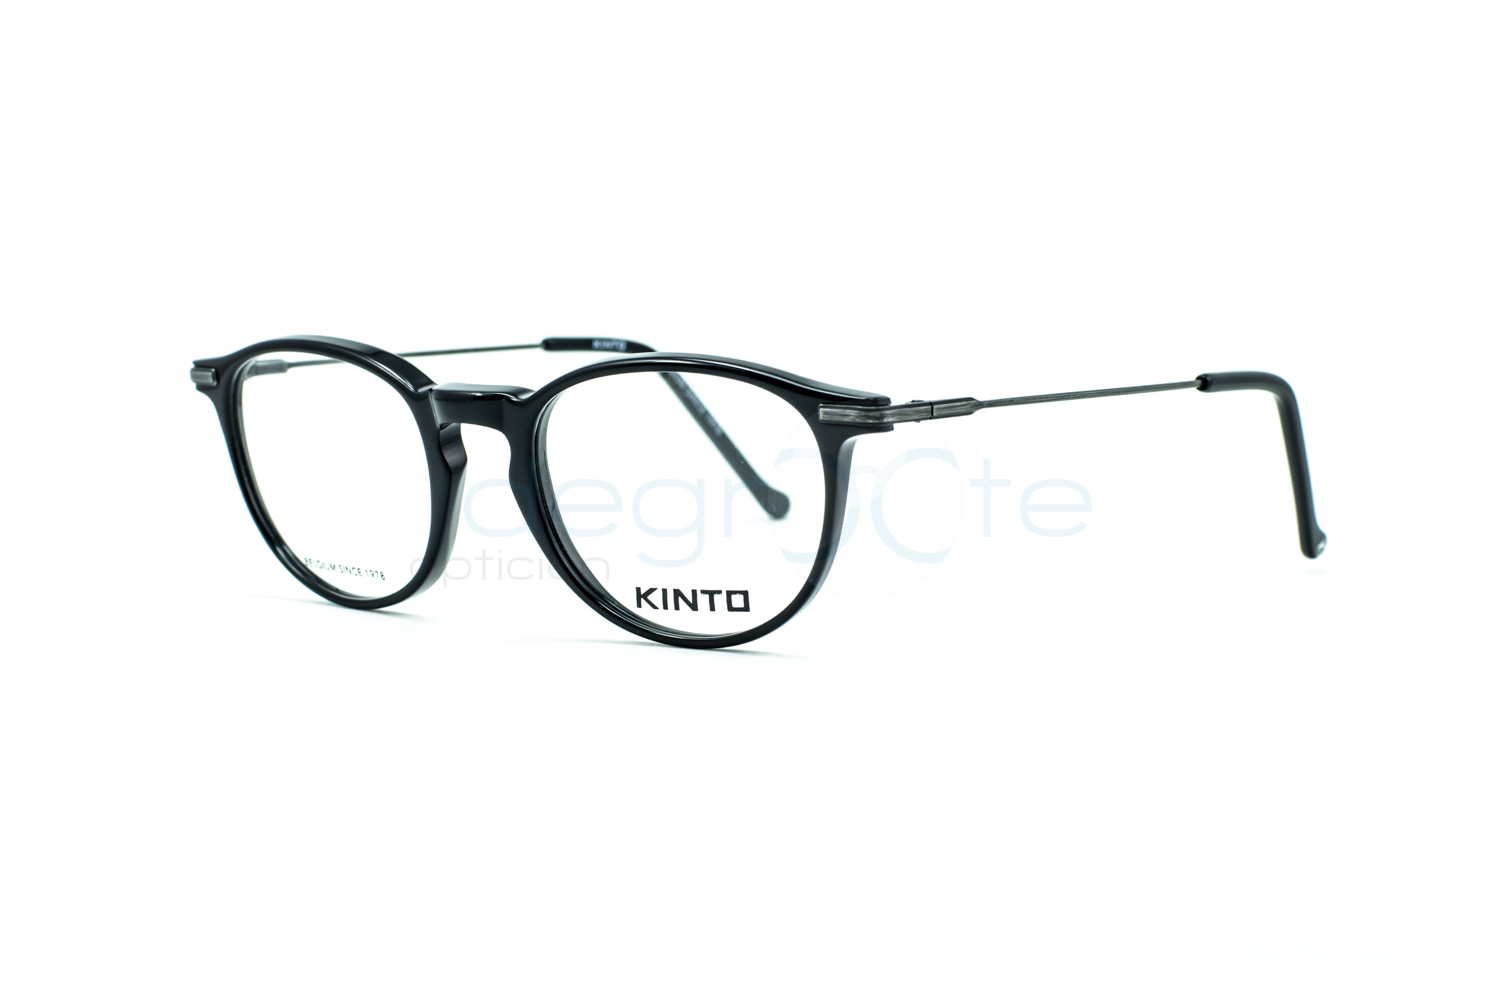 204749be8e Kinto catalogue | Opticien Degroote